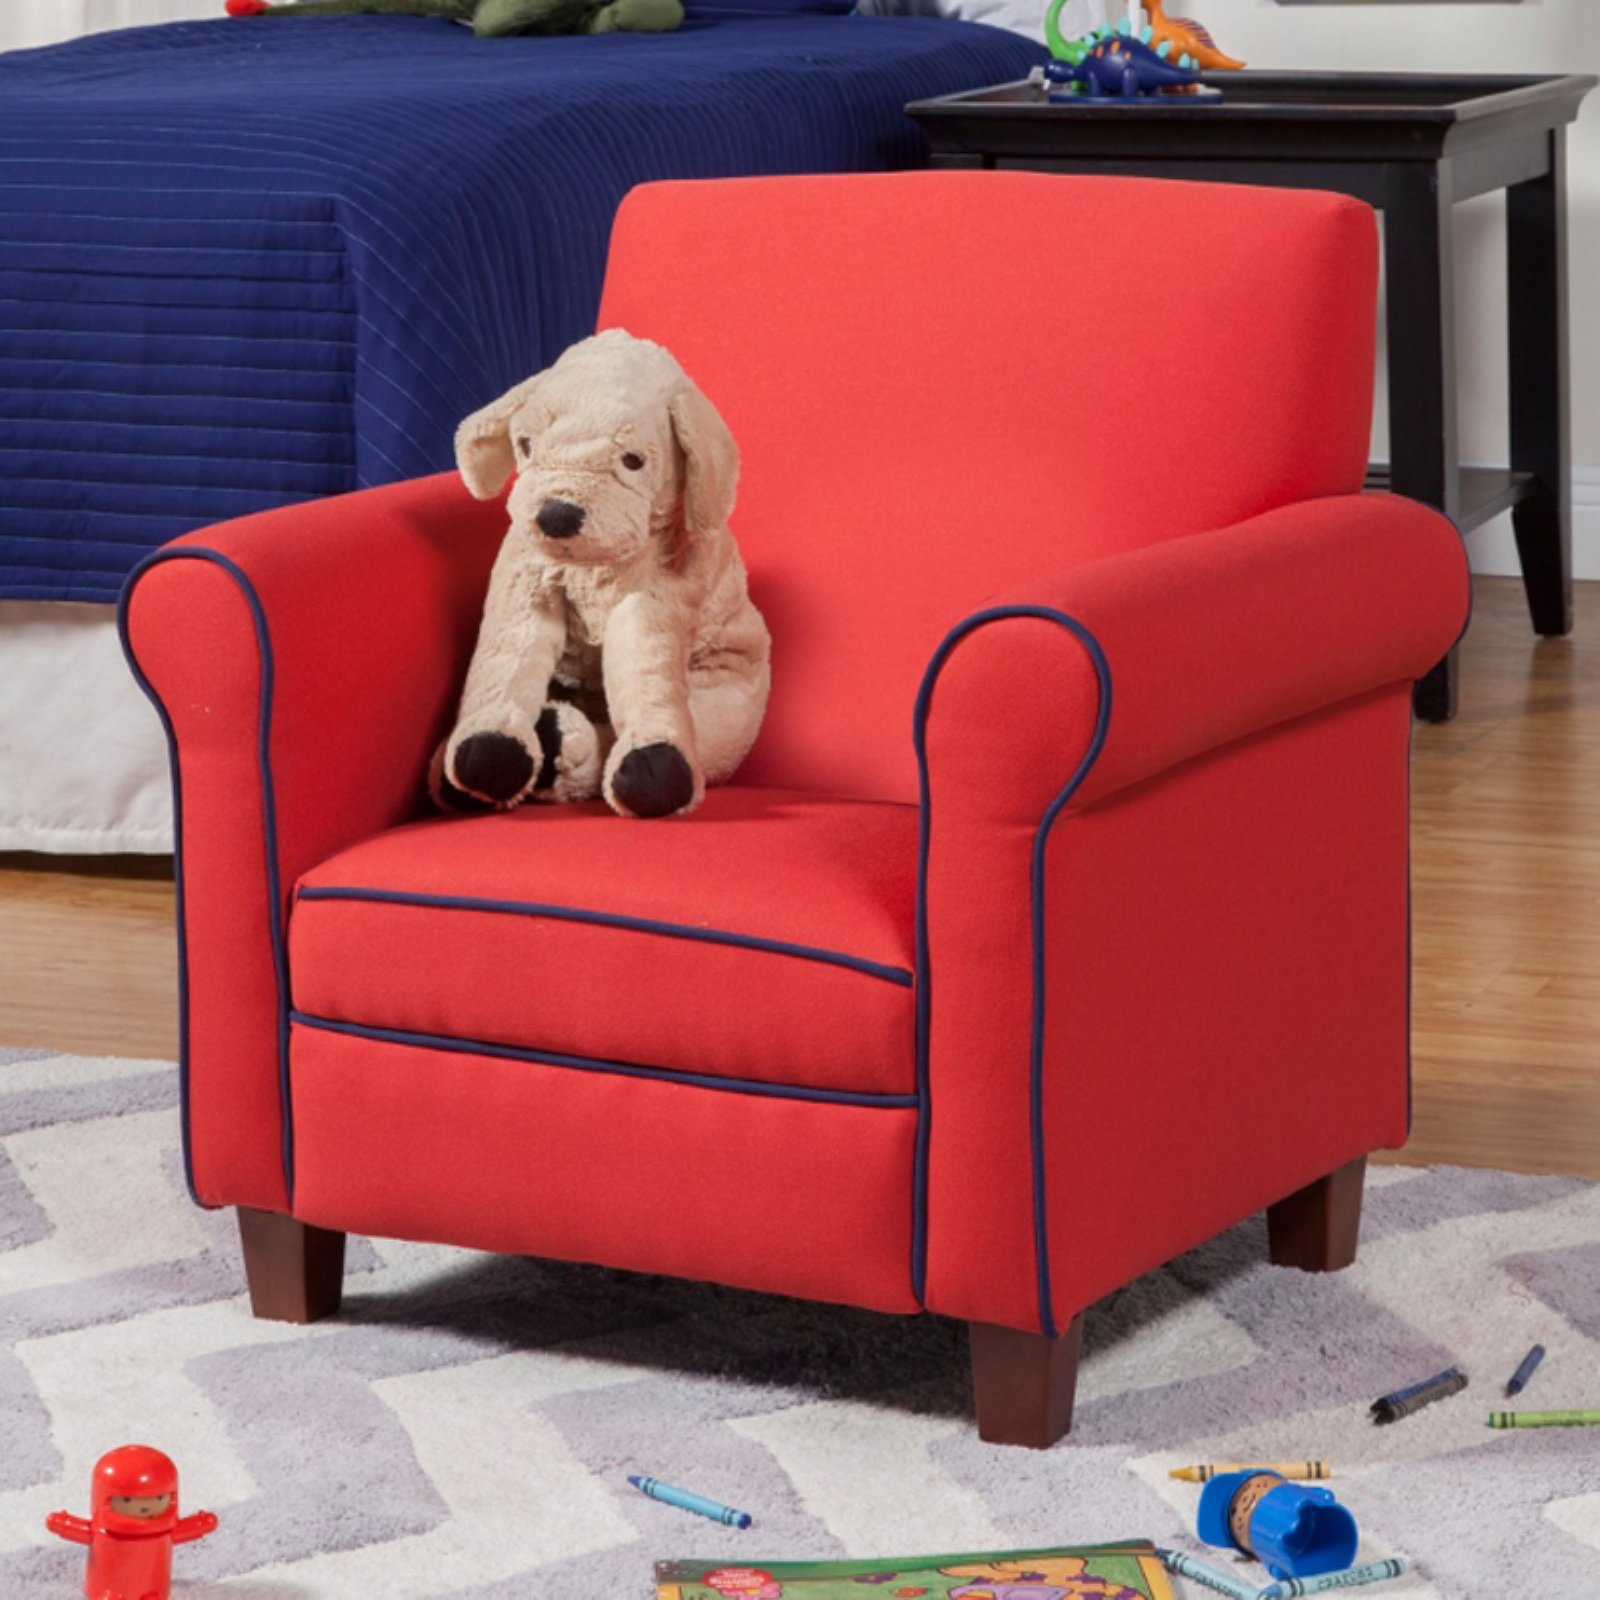 Kinfine Kids Club Chair by Kinfine USA Inc